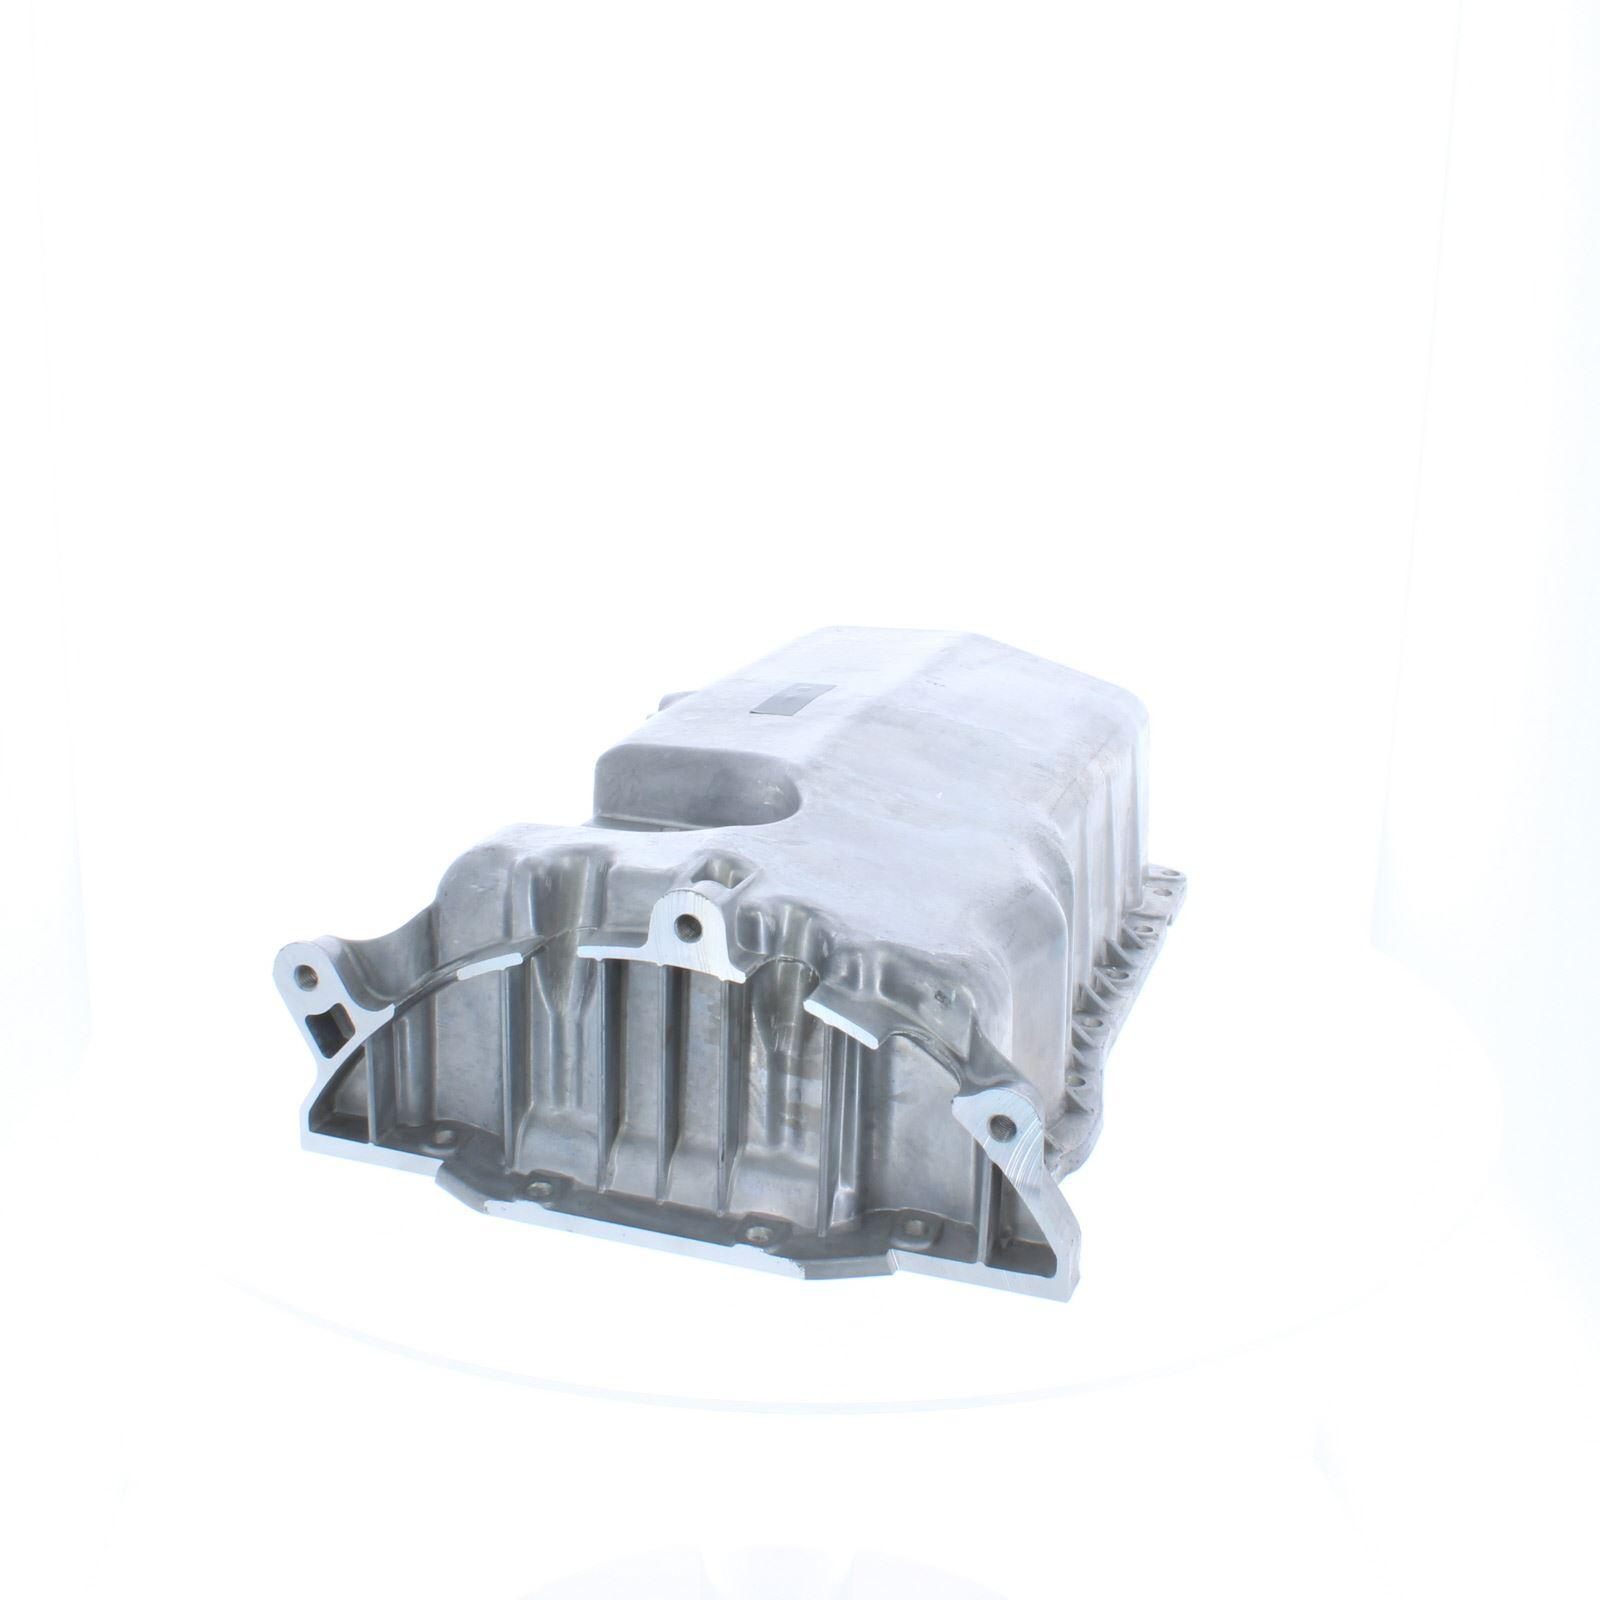 VOLKSWAGEN POLO 2000-2002 1.6L ALLOY ENGINE SUMP PAN